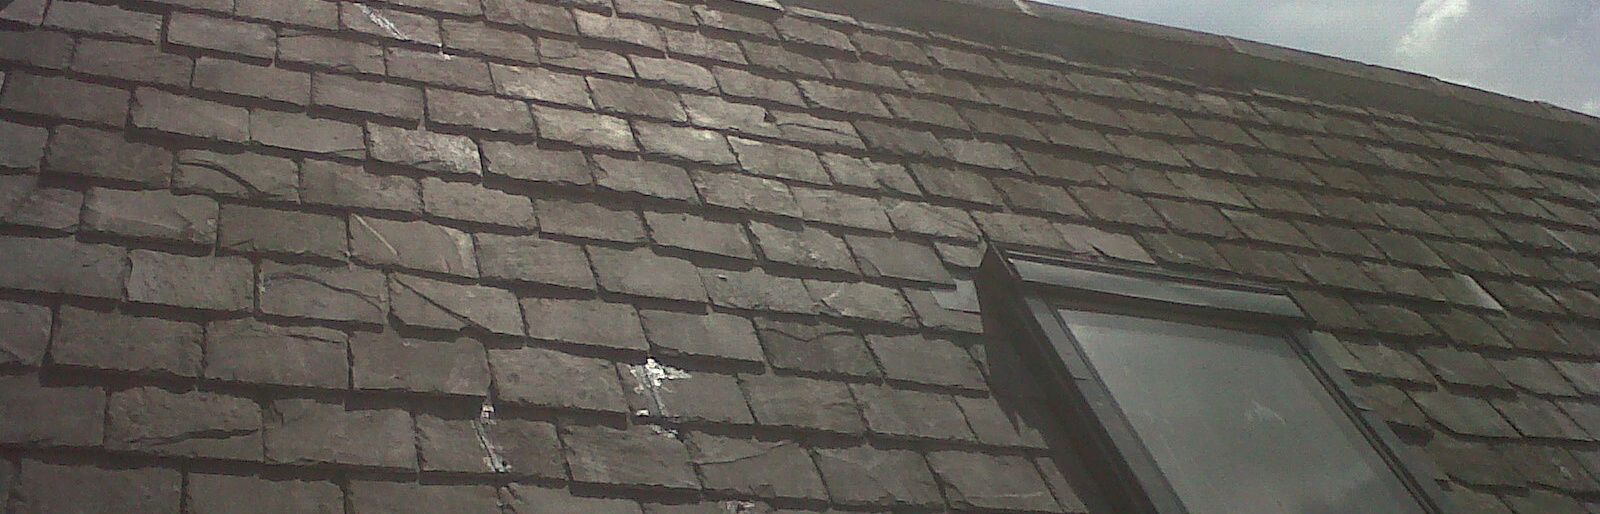 Welsh Roofing Slate